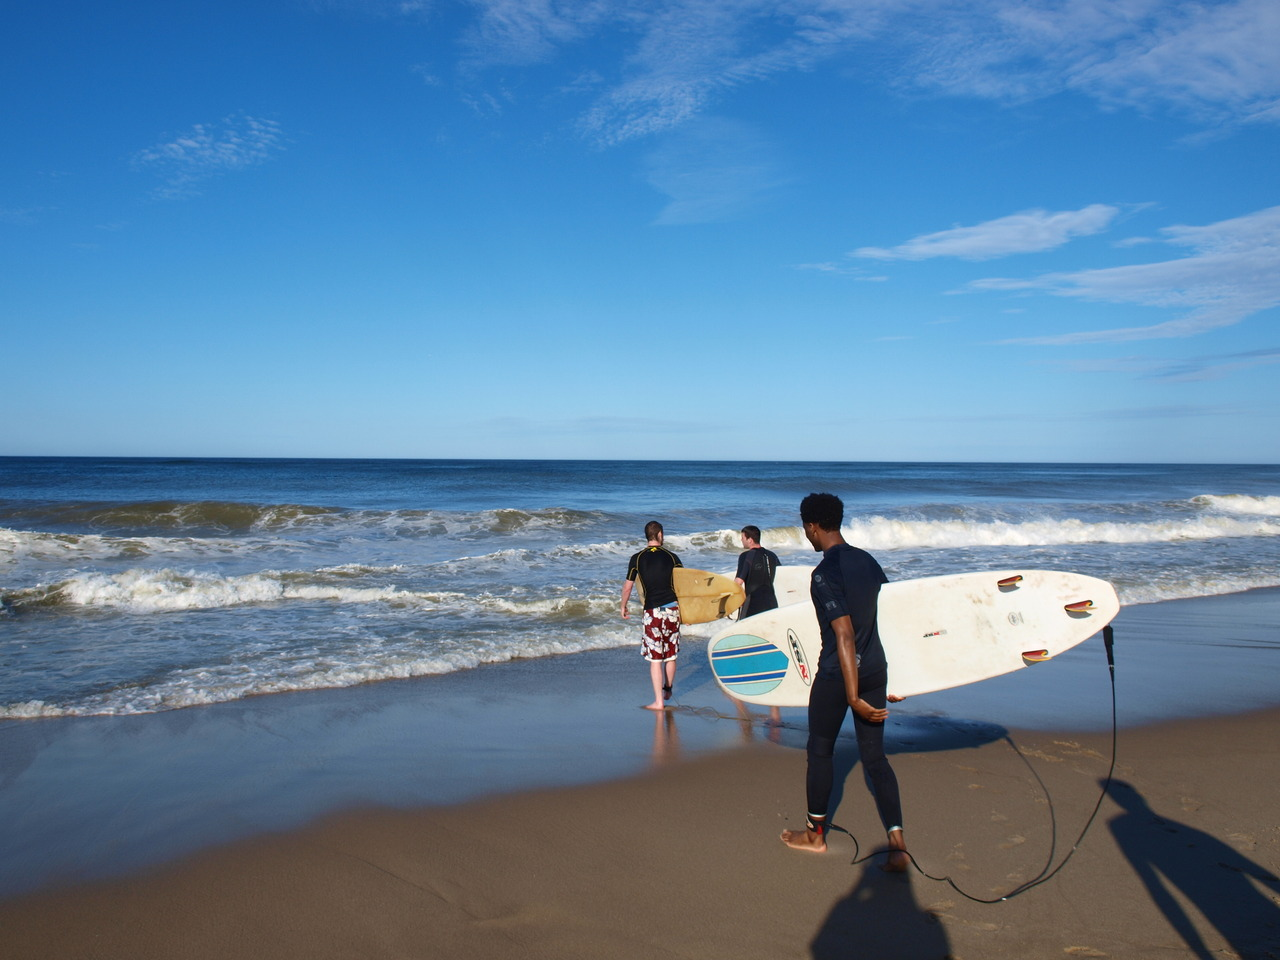 My homie is LIVING. jferb: im alive